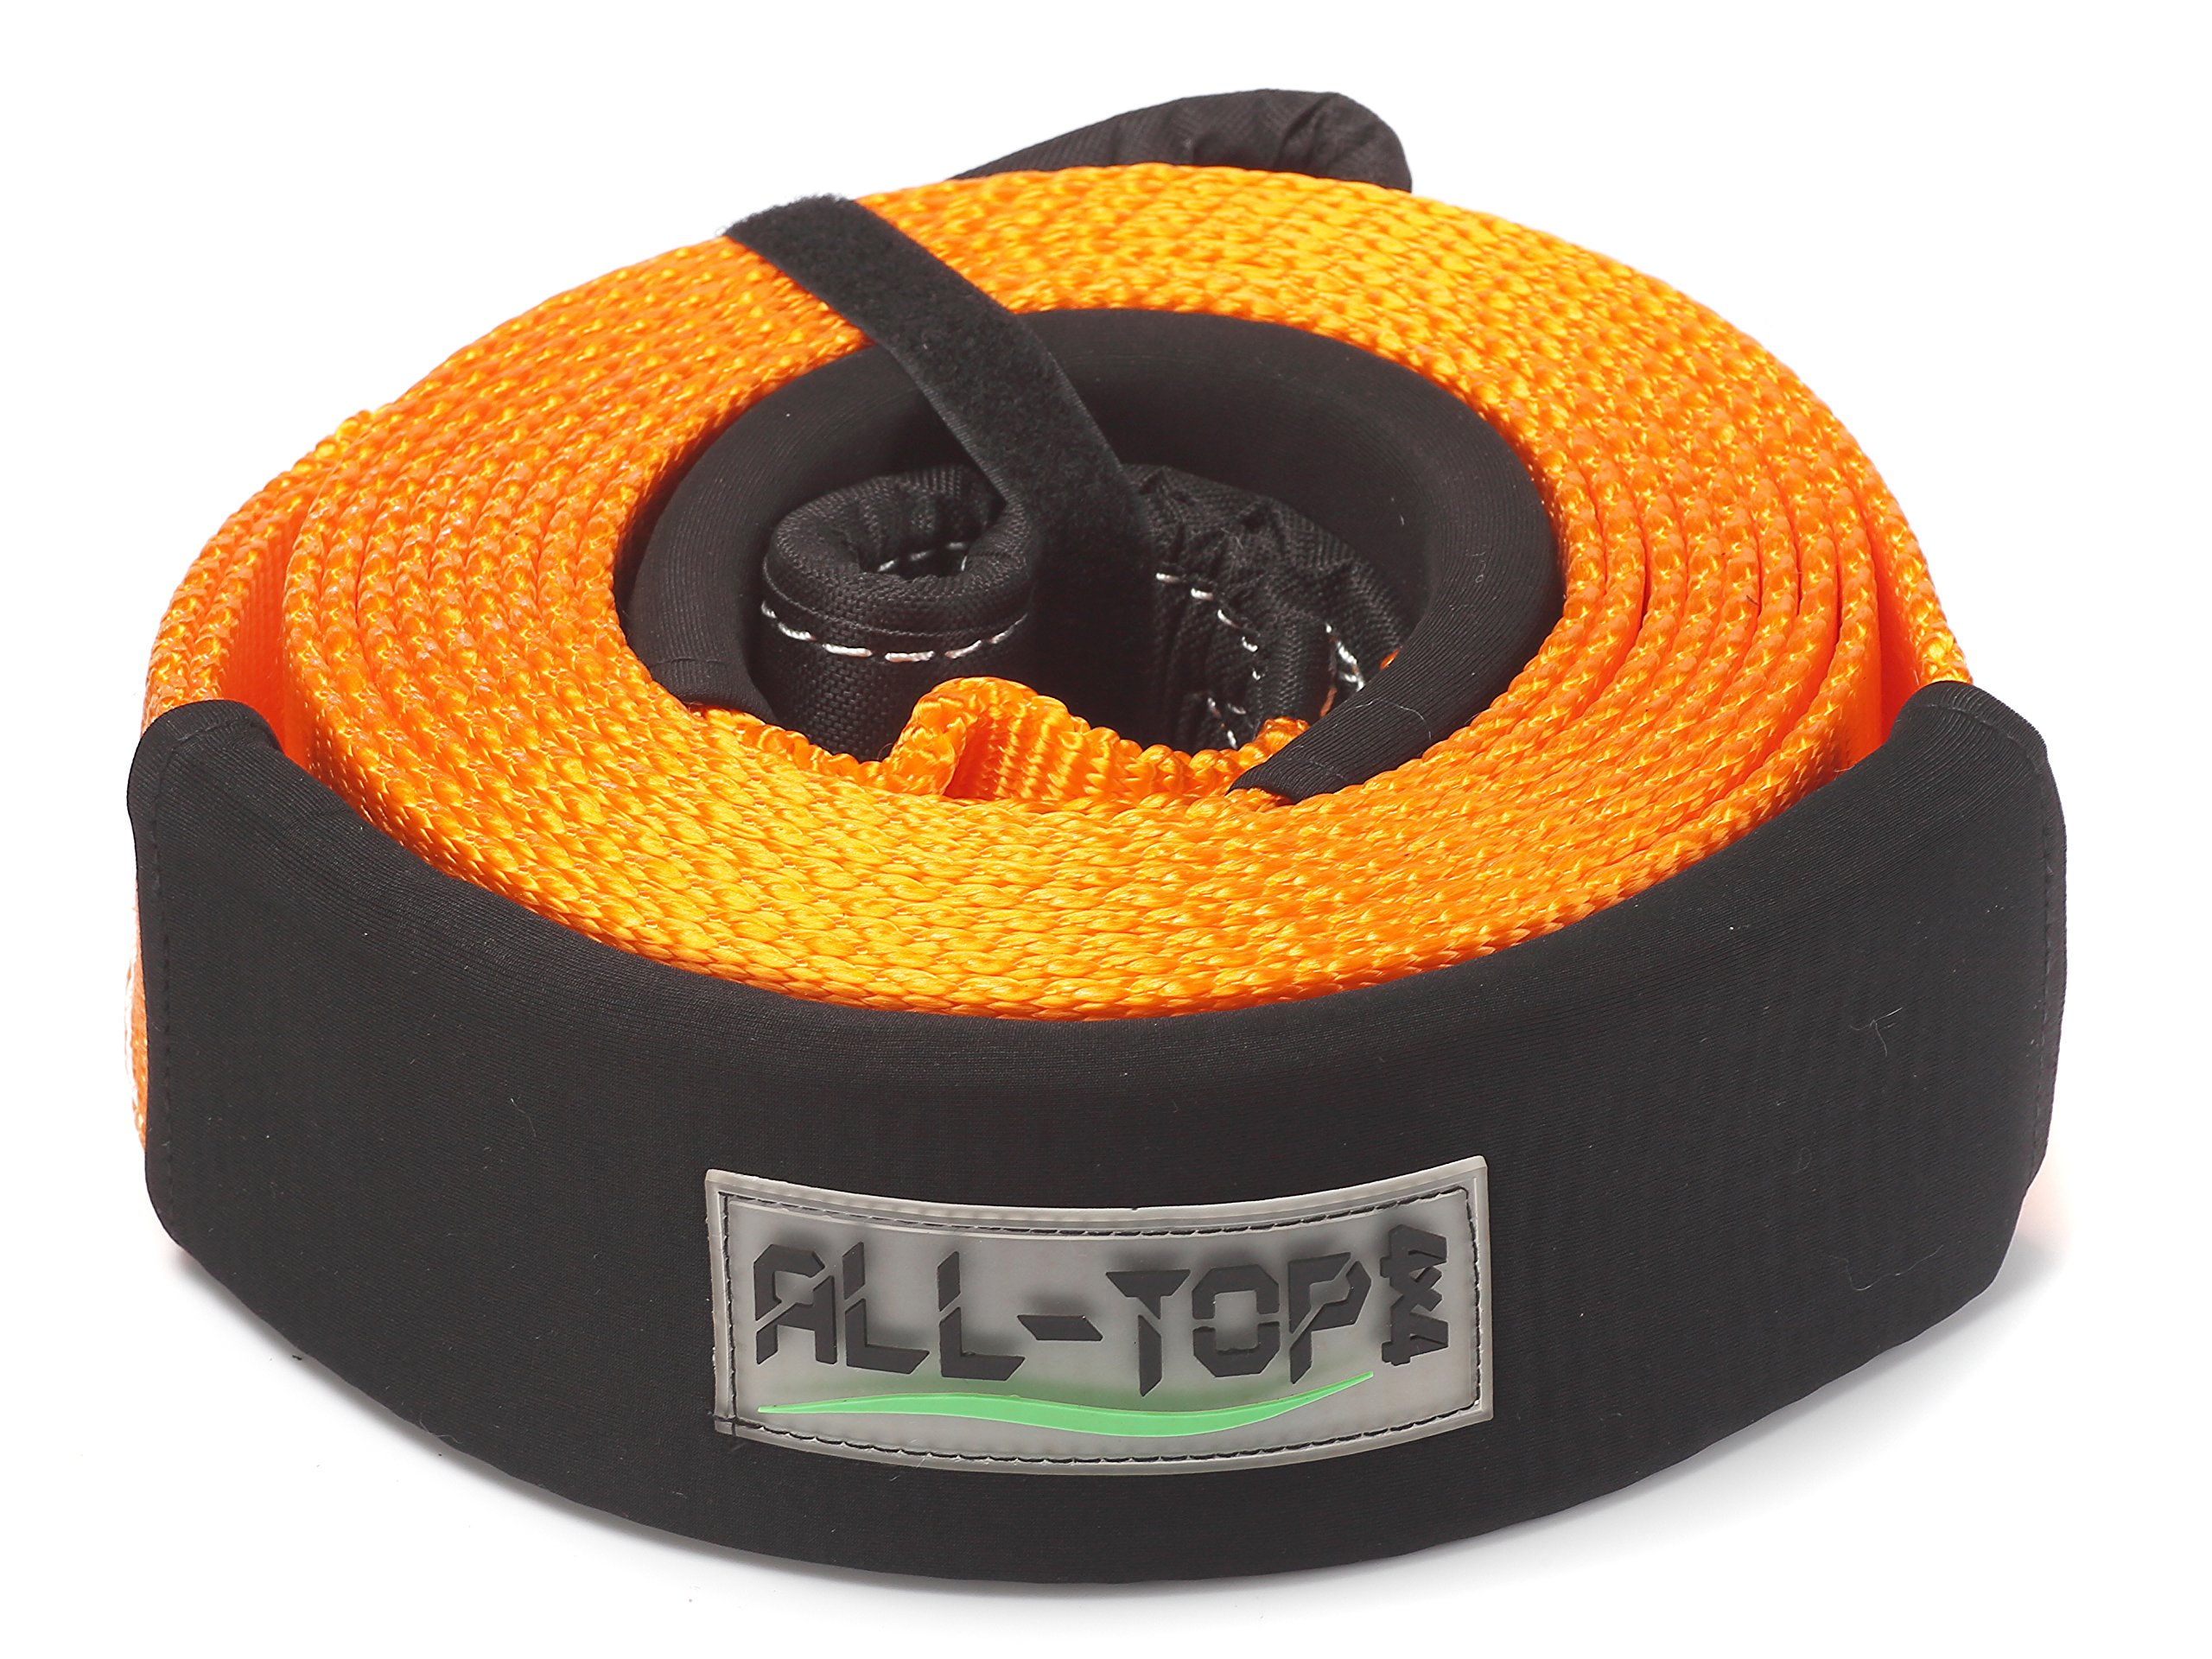 ALL-TOP 100% Nylon Recovery Tow Strap 3'' x 20ft - 32,000 Lbs Snatch Strap - 22% Elasticity by Nylon N66 - Triple Reinforced Loop Adjustable Protector Sleeve - Generate Kinetic Force to Recover by ALL-TOP